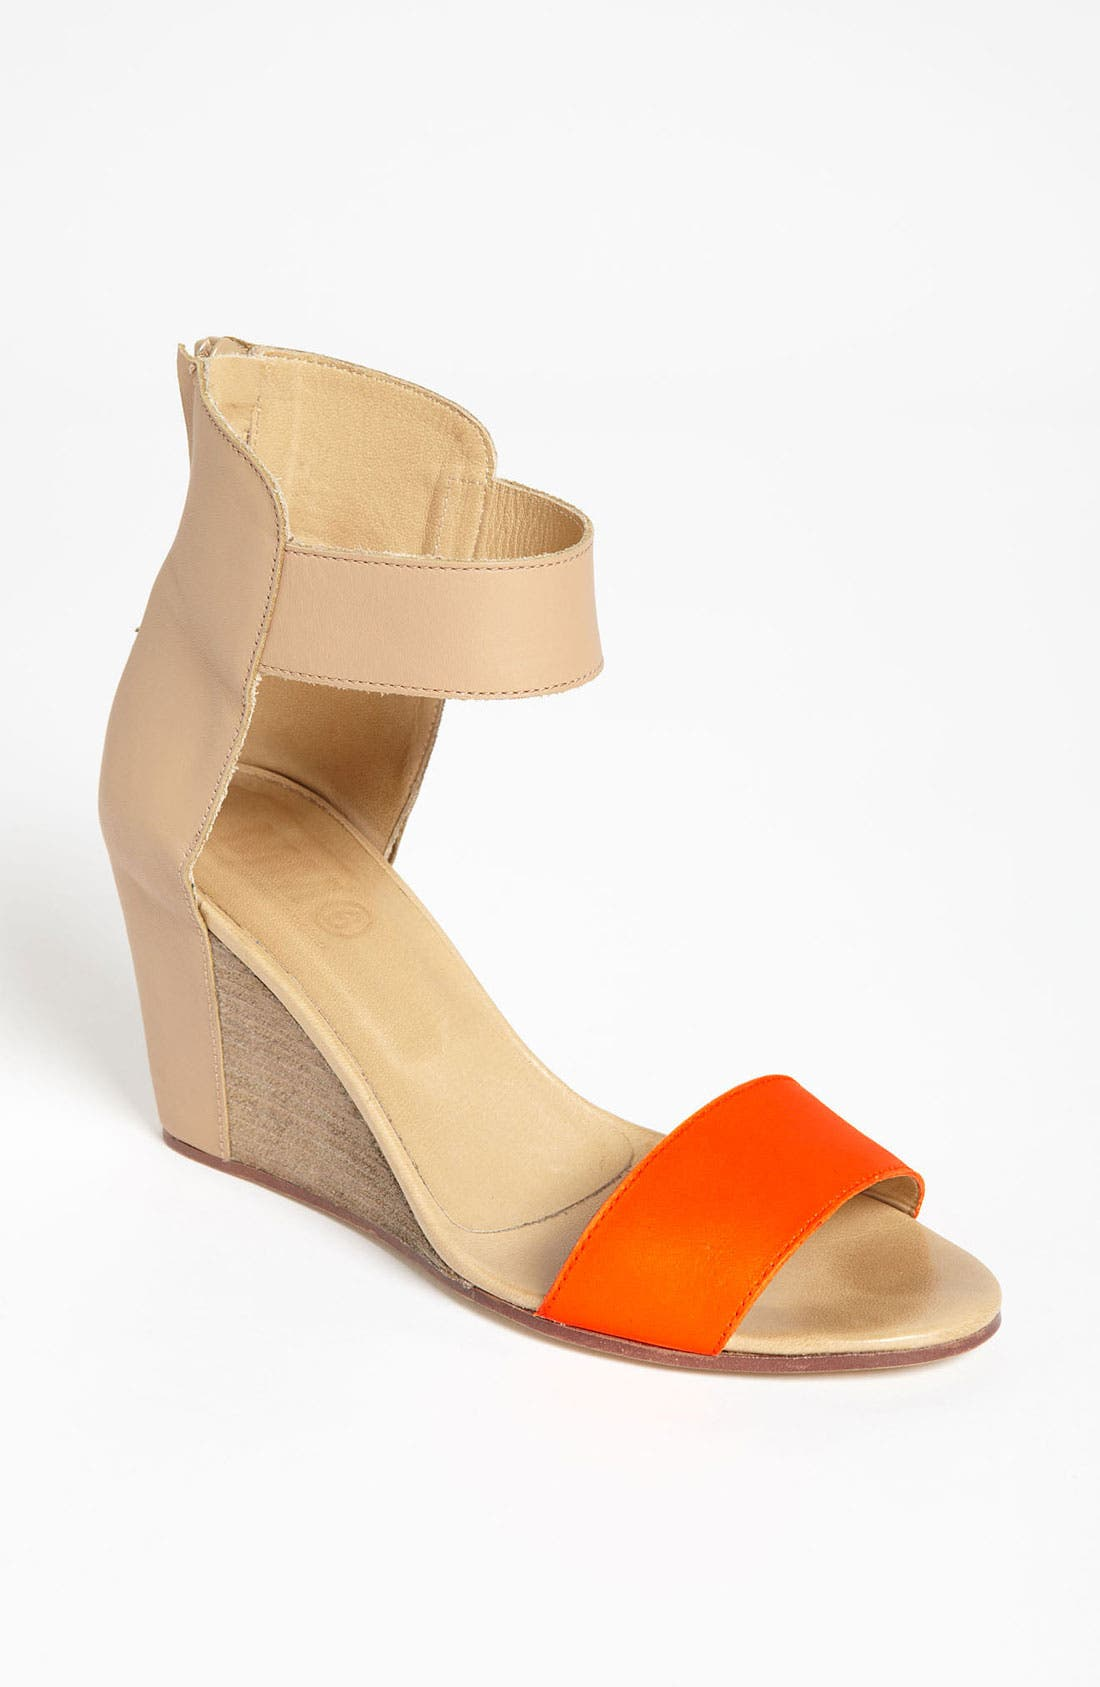 Main Image - MM6 Maison Margiela Two Tone Wedge Sandal